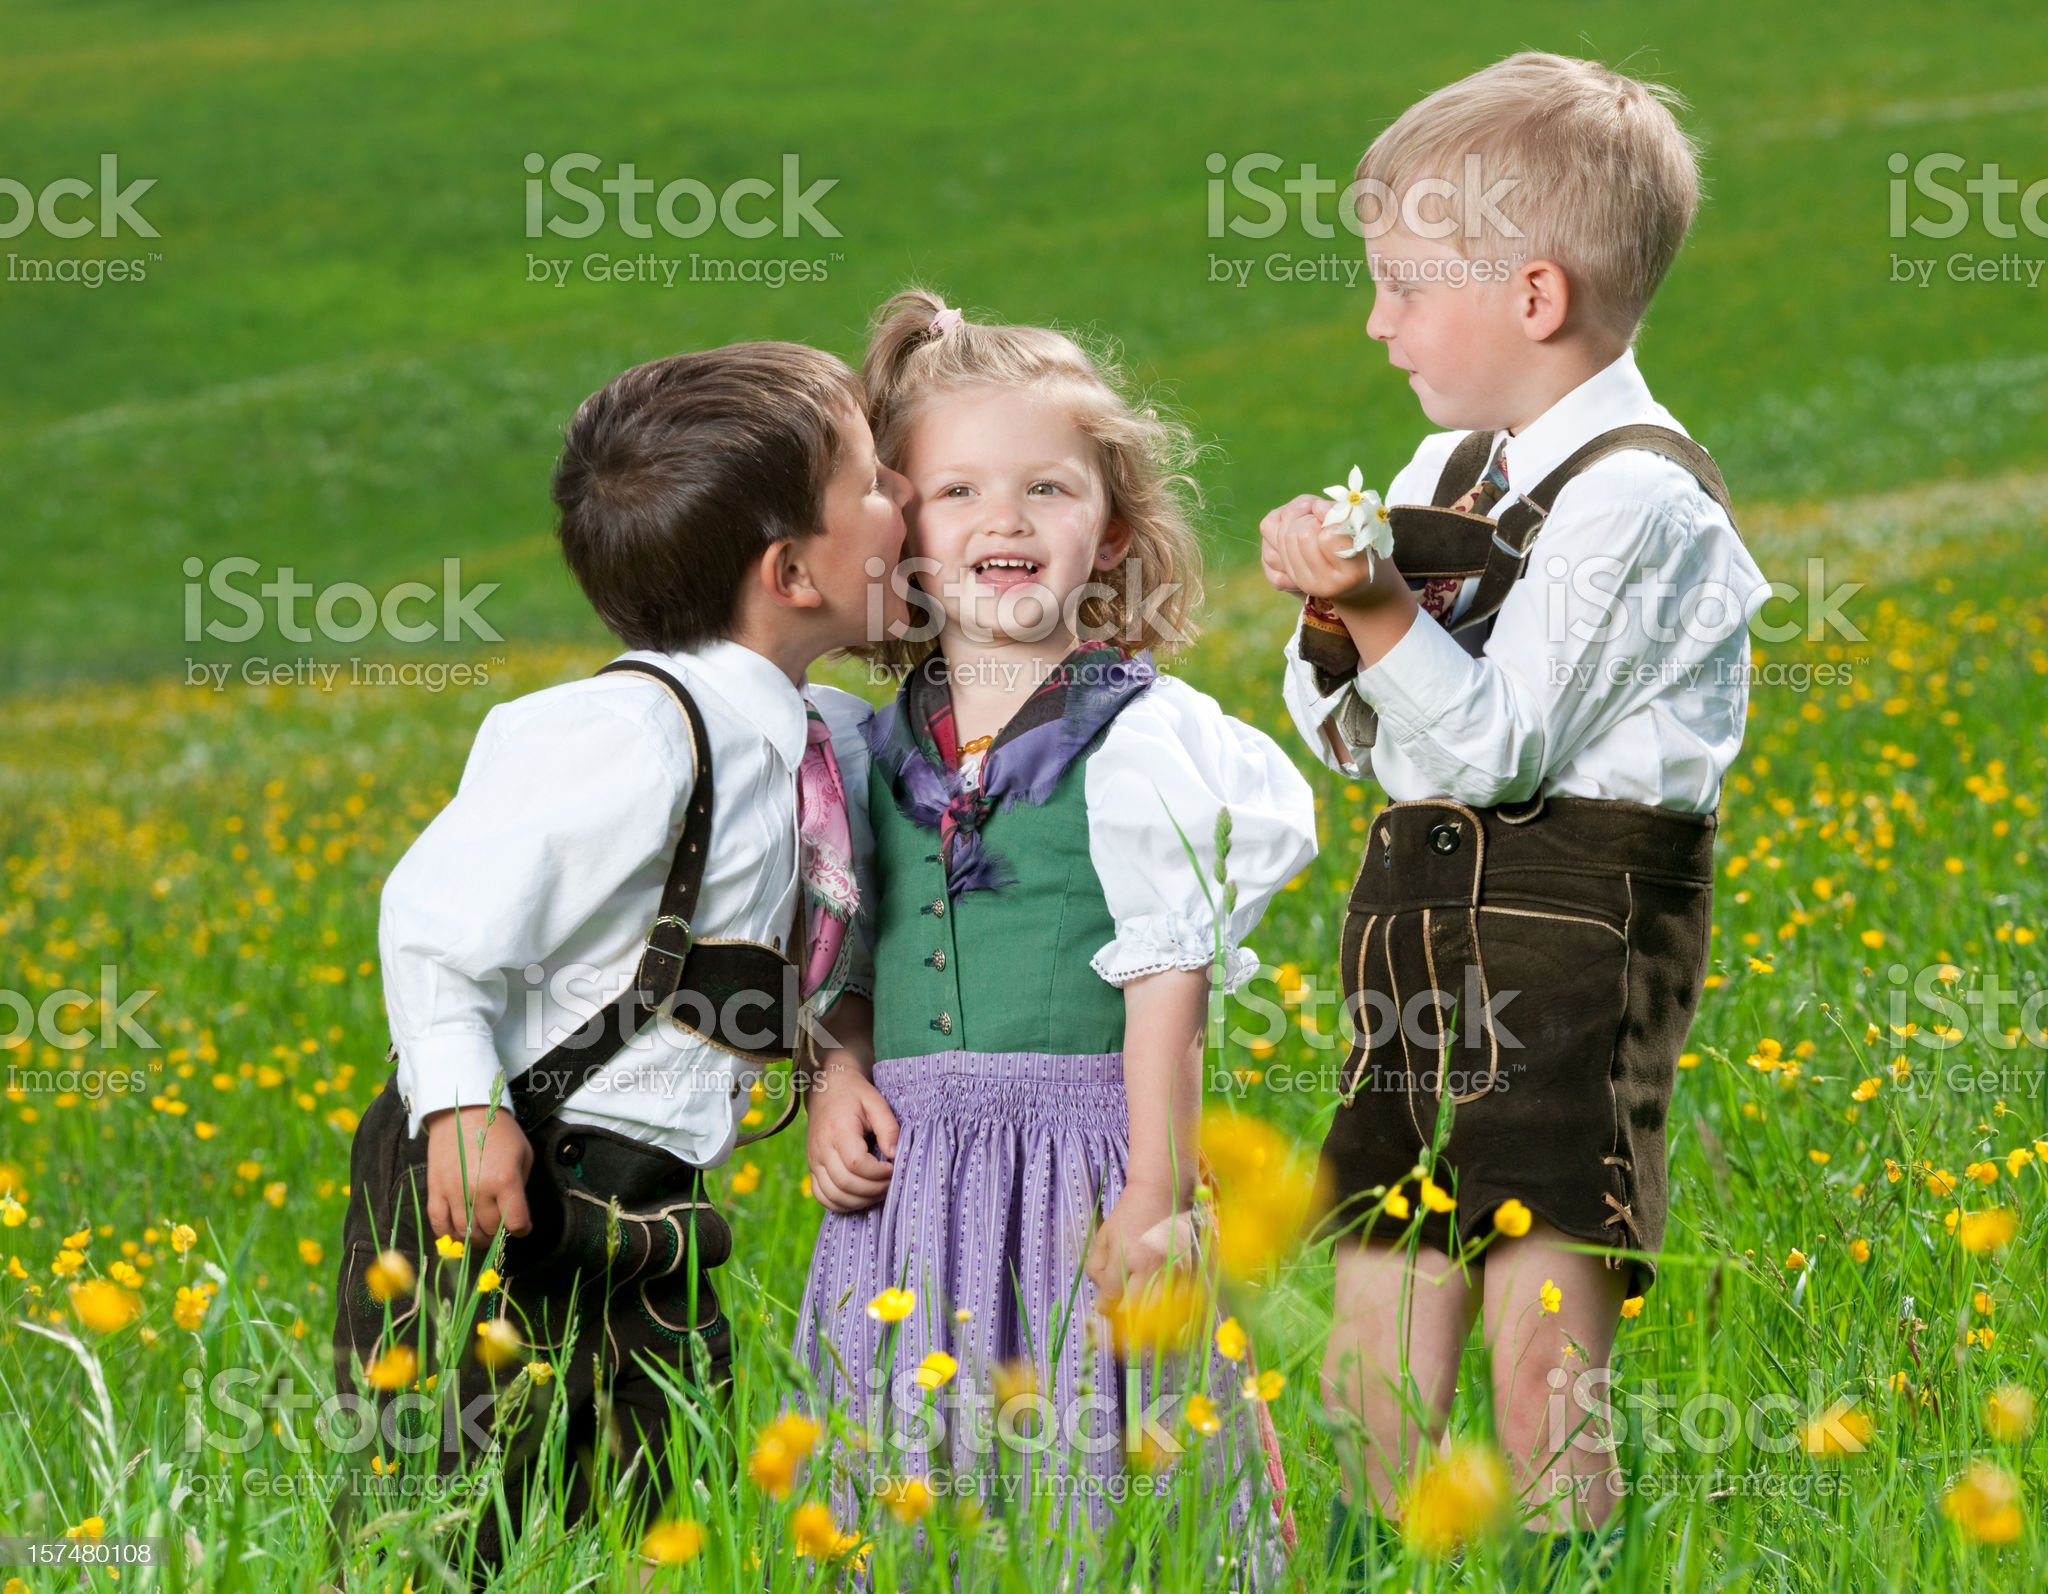 Kids whispering - let me tell you a secret royalty-free stock photo